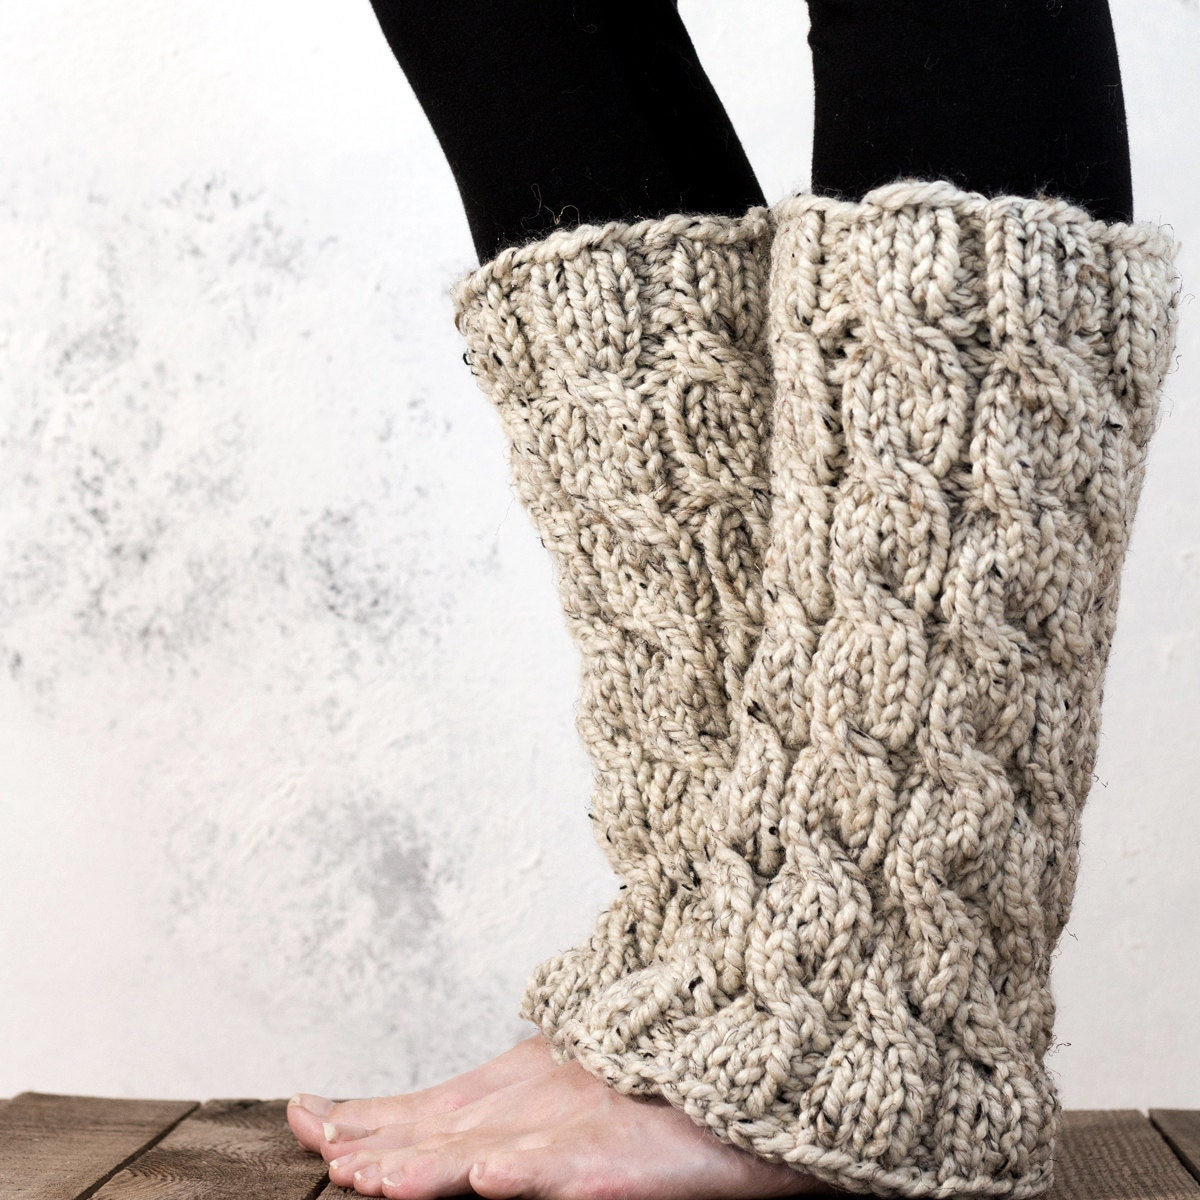 Knitting Leg Warmers Pattern : Cable Knit Leg Warmers Knitting Pattern MAJESTY a set of